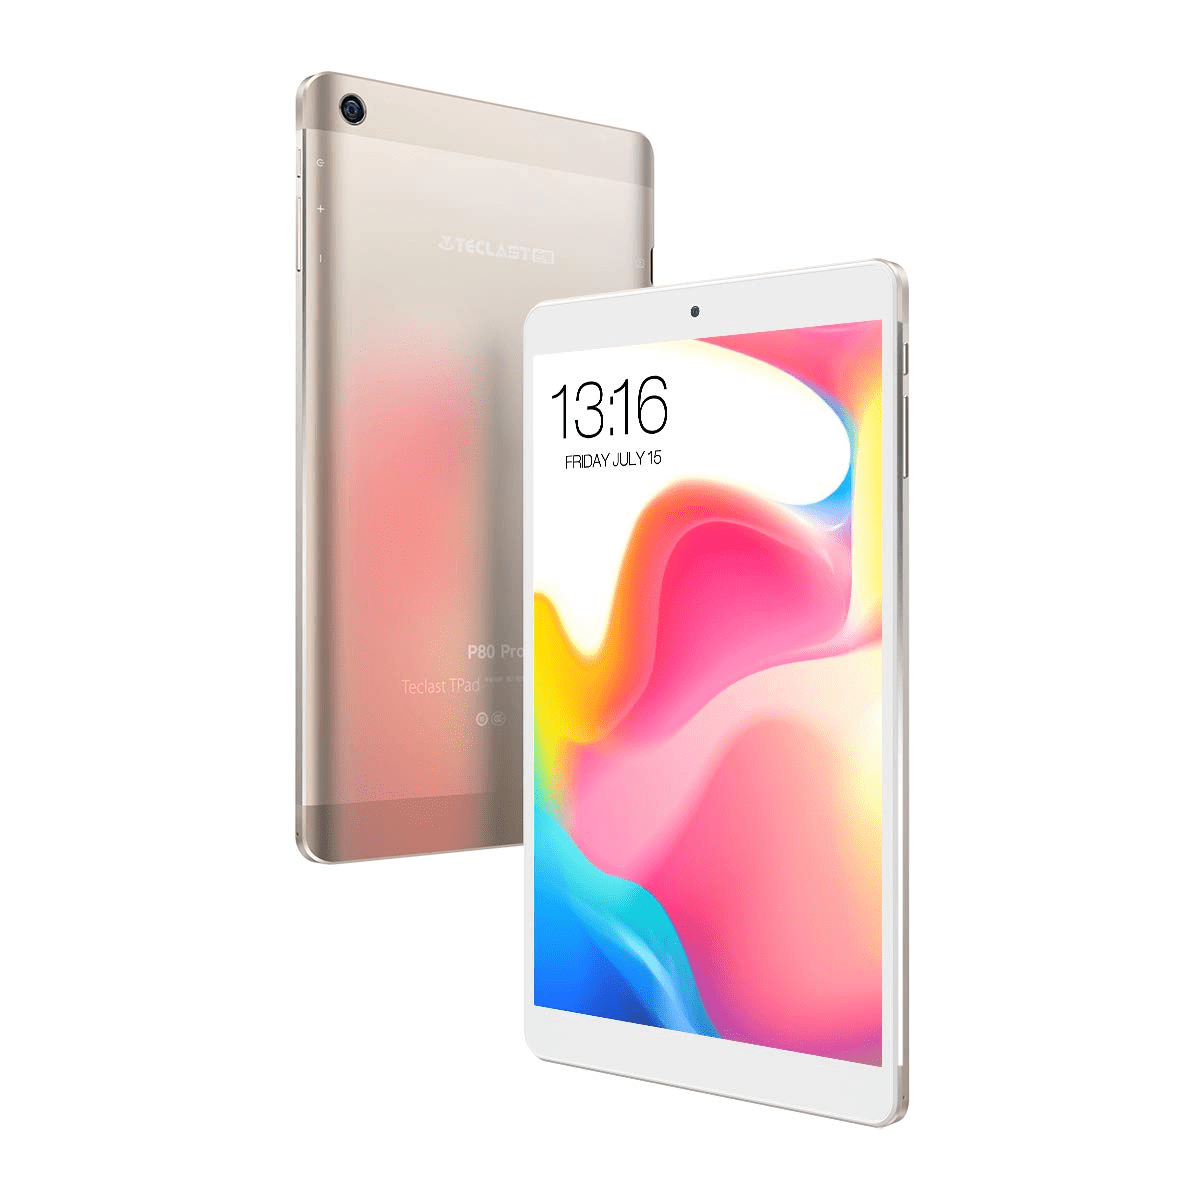 TECLAST P80Pro Tablet PC 84'59 euros 1575041163139-png.375354